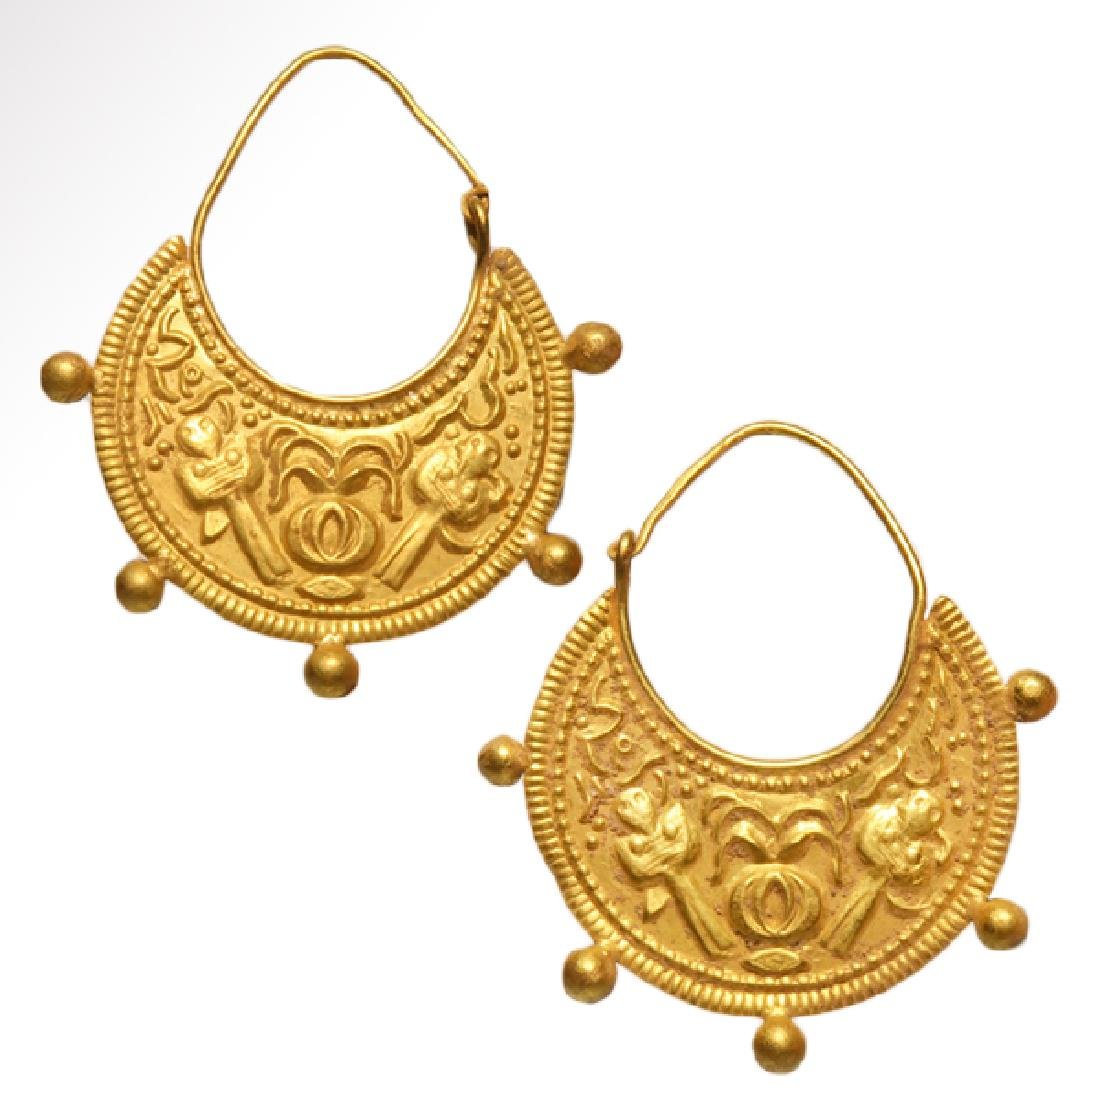 Roman / Early Byzantine Gold Earrings